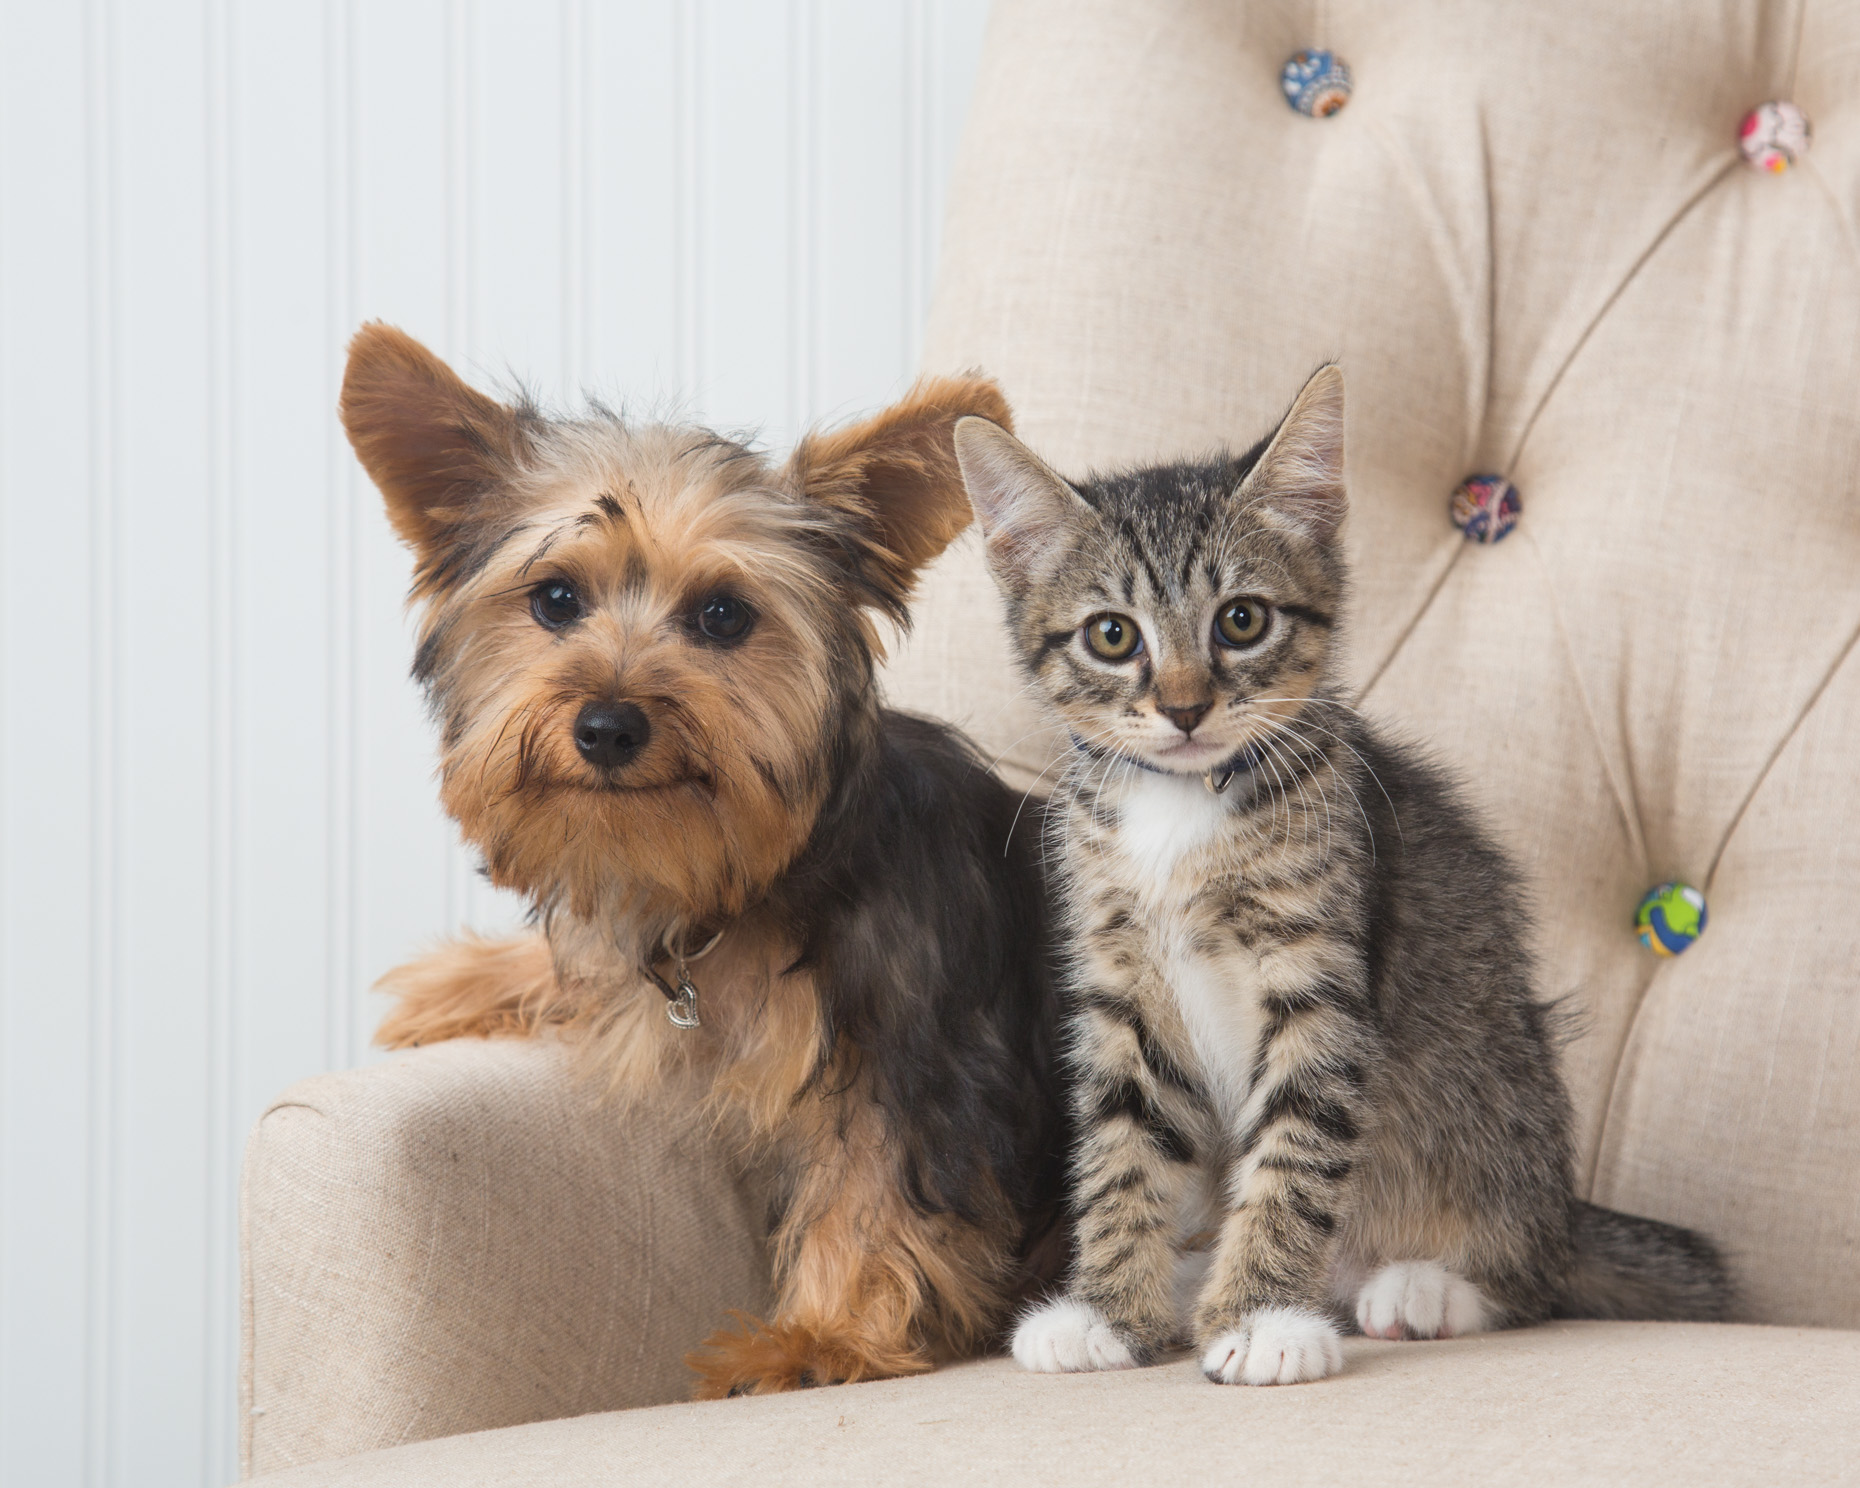 Cat and Dog Photography | Puppy and Kitten in Chair by Mark Rogers